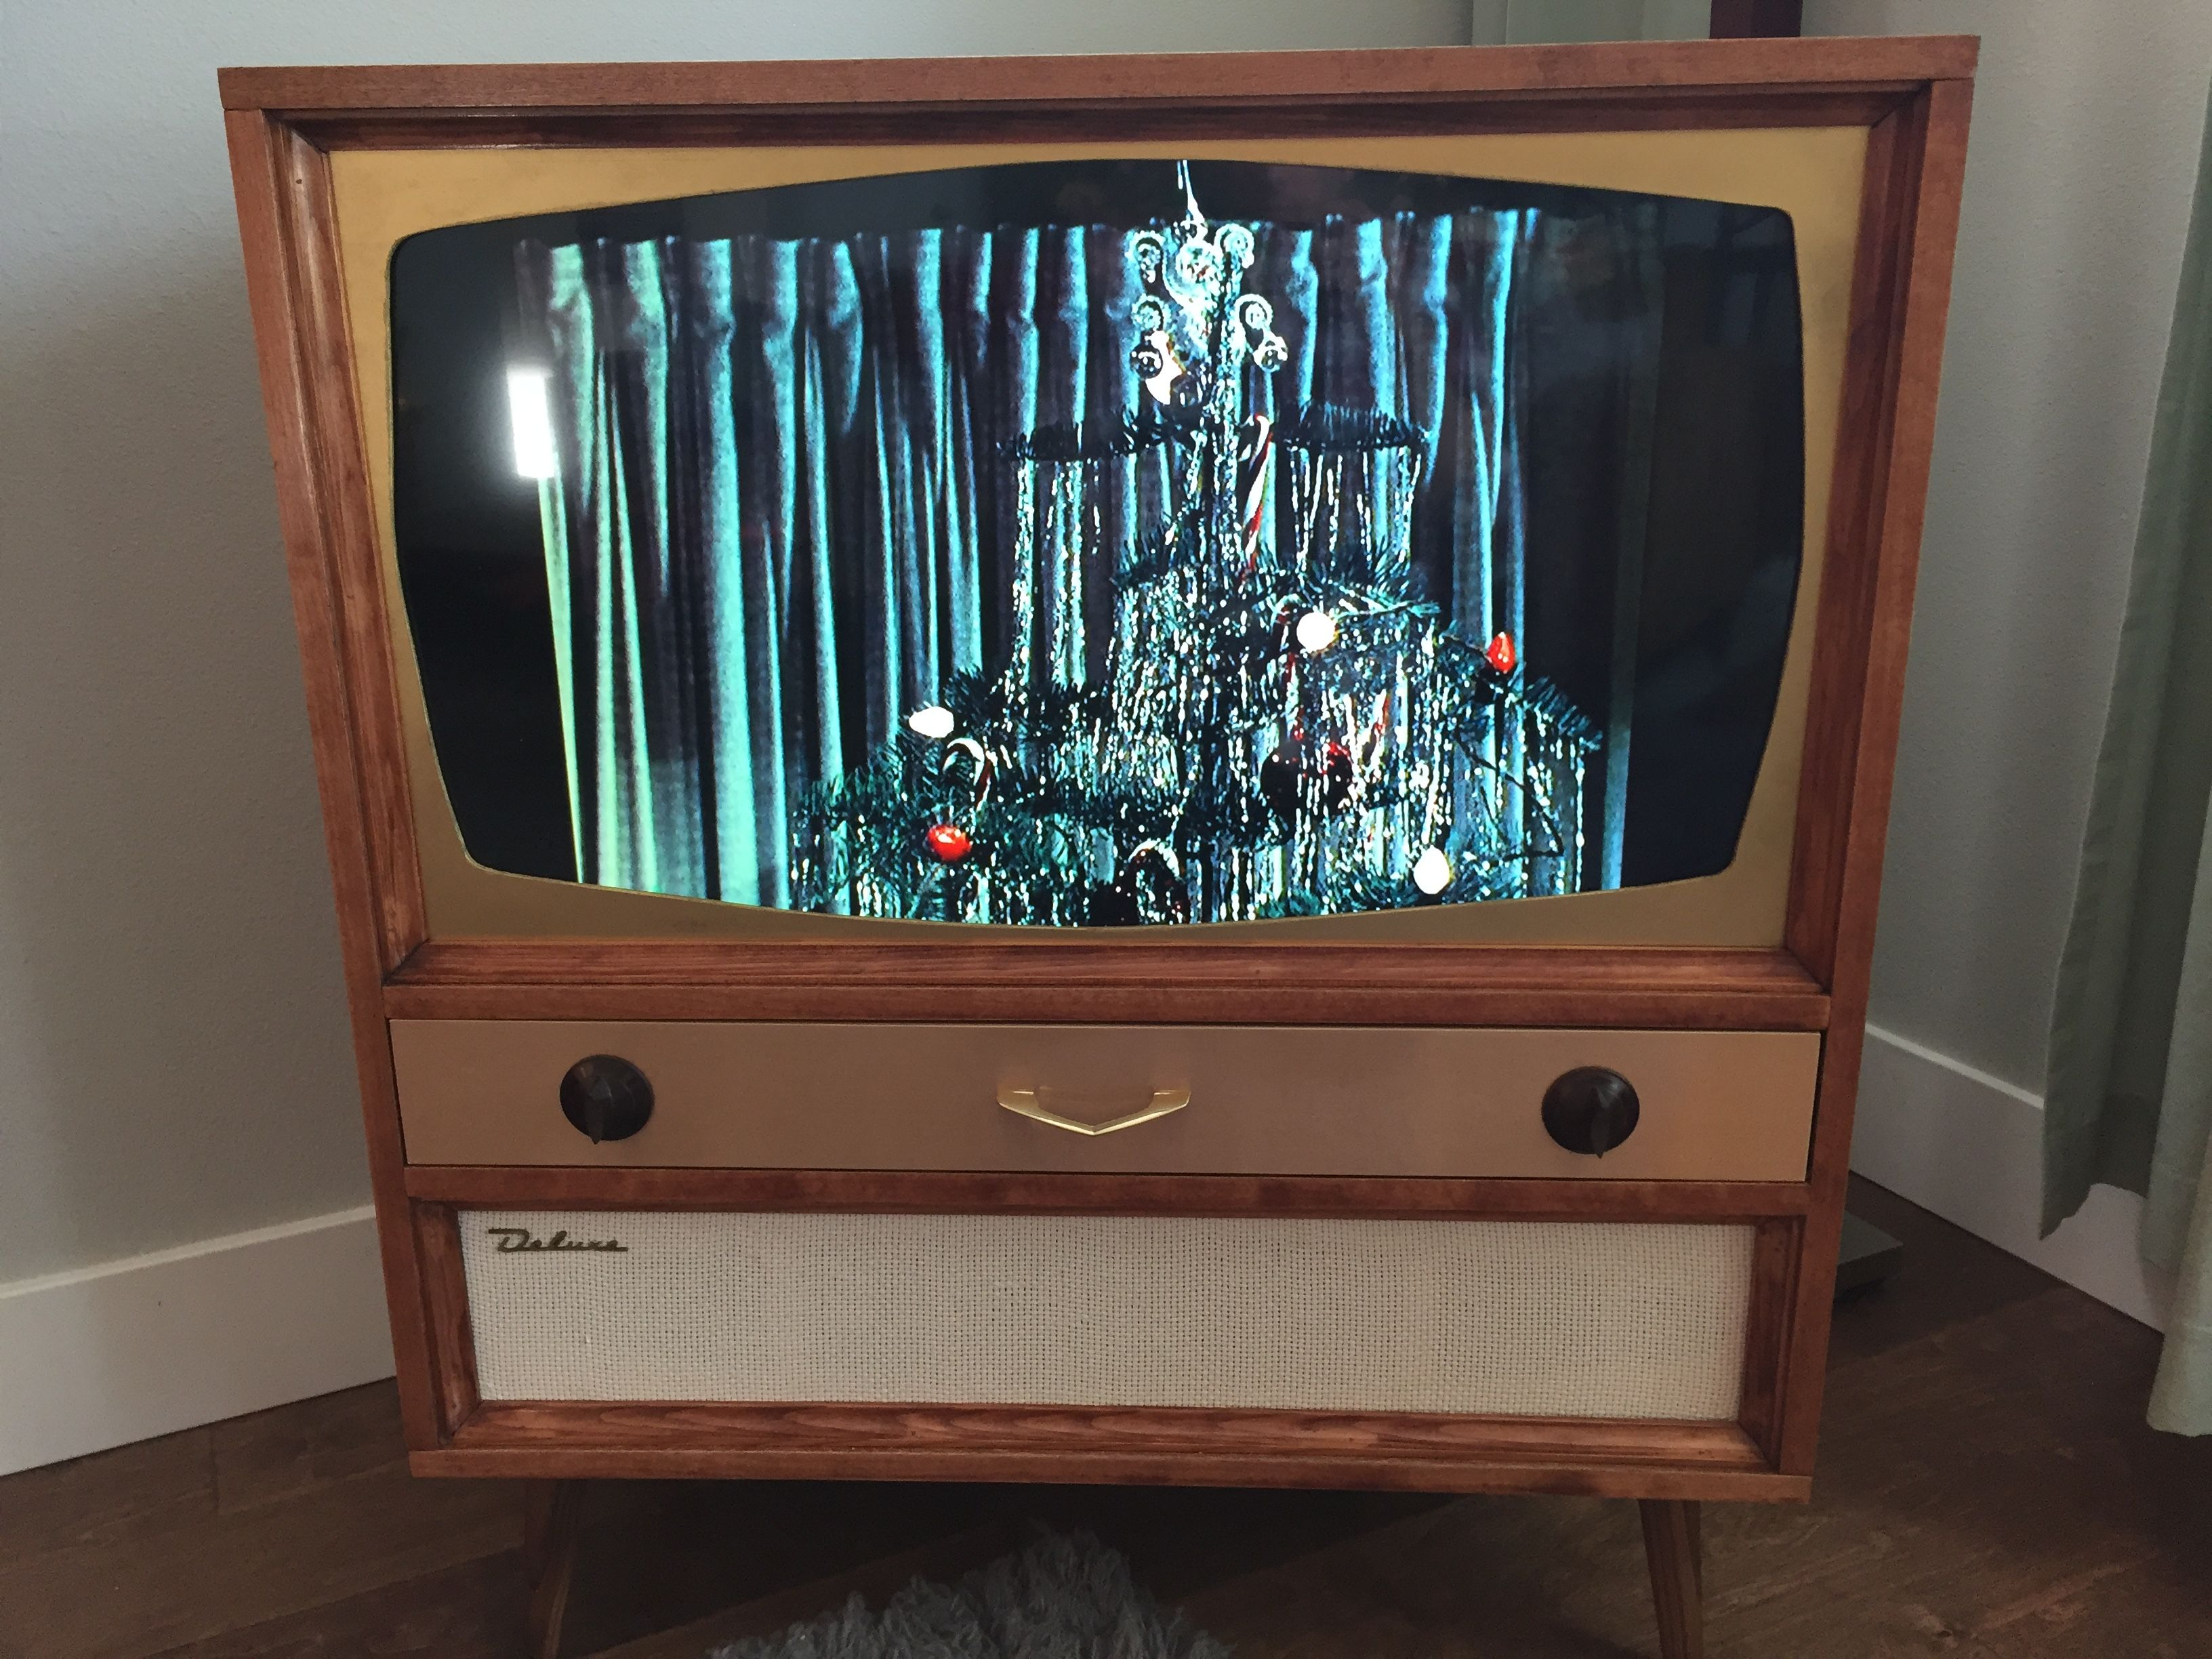 After Looking At Many Pictures Of Vintage Tvs I Built My Own 32 Led Bluray Wireless Sub Etc Mid Century Mod Modern Tv Cabinet Retro Renovation Modern Tv